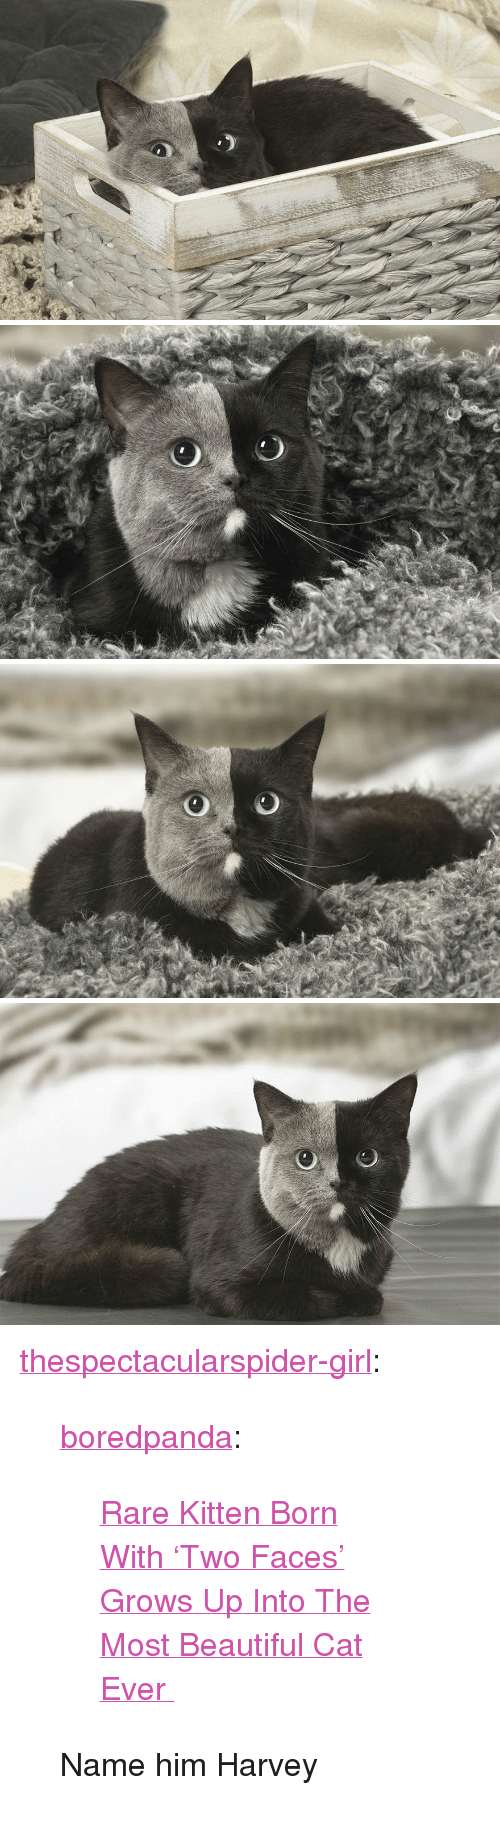 """two faced: <p><a href=""""http://thespectacularspider-girl.tumblr.com/post/173880230099/boredpanda-rare-kitten-born-with-two-faces"""" class=""""tumblr_blog"""">thespectacularspider-girl</a>:</p> <blockquote> <p><a href=""""http://boredpanda.tumblr.com/post/171171993455/rare-kitten-born-with-two-faces-grows-up-into"""" class=""""tumblr_blog"""">boredpanda</a>:</p> <blockquote><p><a href=""""https://www.boredpanda.com/two-faced-cat-british-short-hair-france-jean-michel-labat/"""">  Rare Kitten Born With 'Two Faces' Grows Up Into The Most Beautiful Cat Ever  </a><br/></p></blockquote> <p>Name him Harvey</p> </blockquote>"""